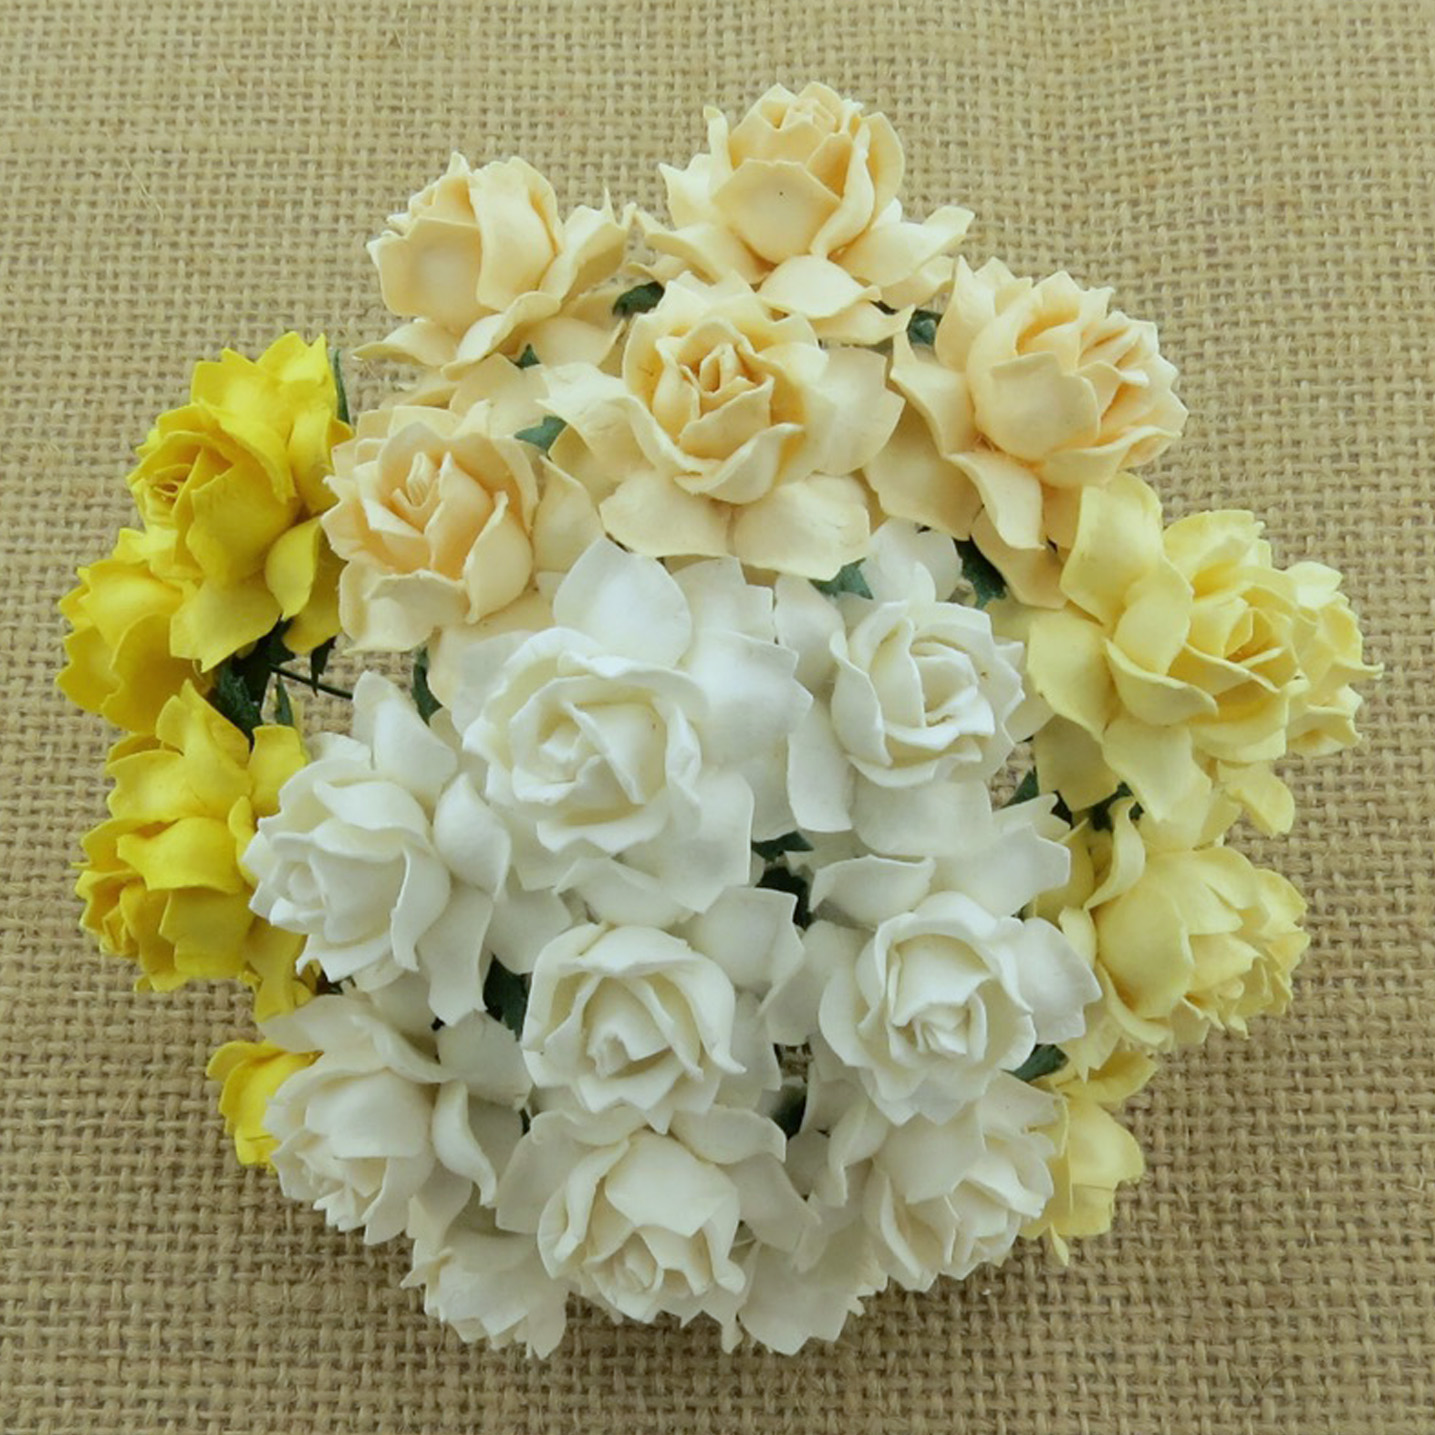 50 MIXED WHITE/CREAM MULBERRY PAPER COTTAGE ROSES - 5 COLOR